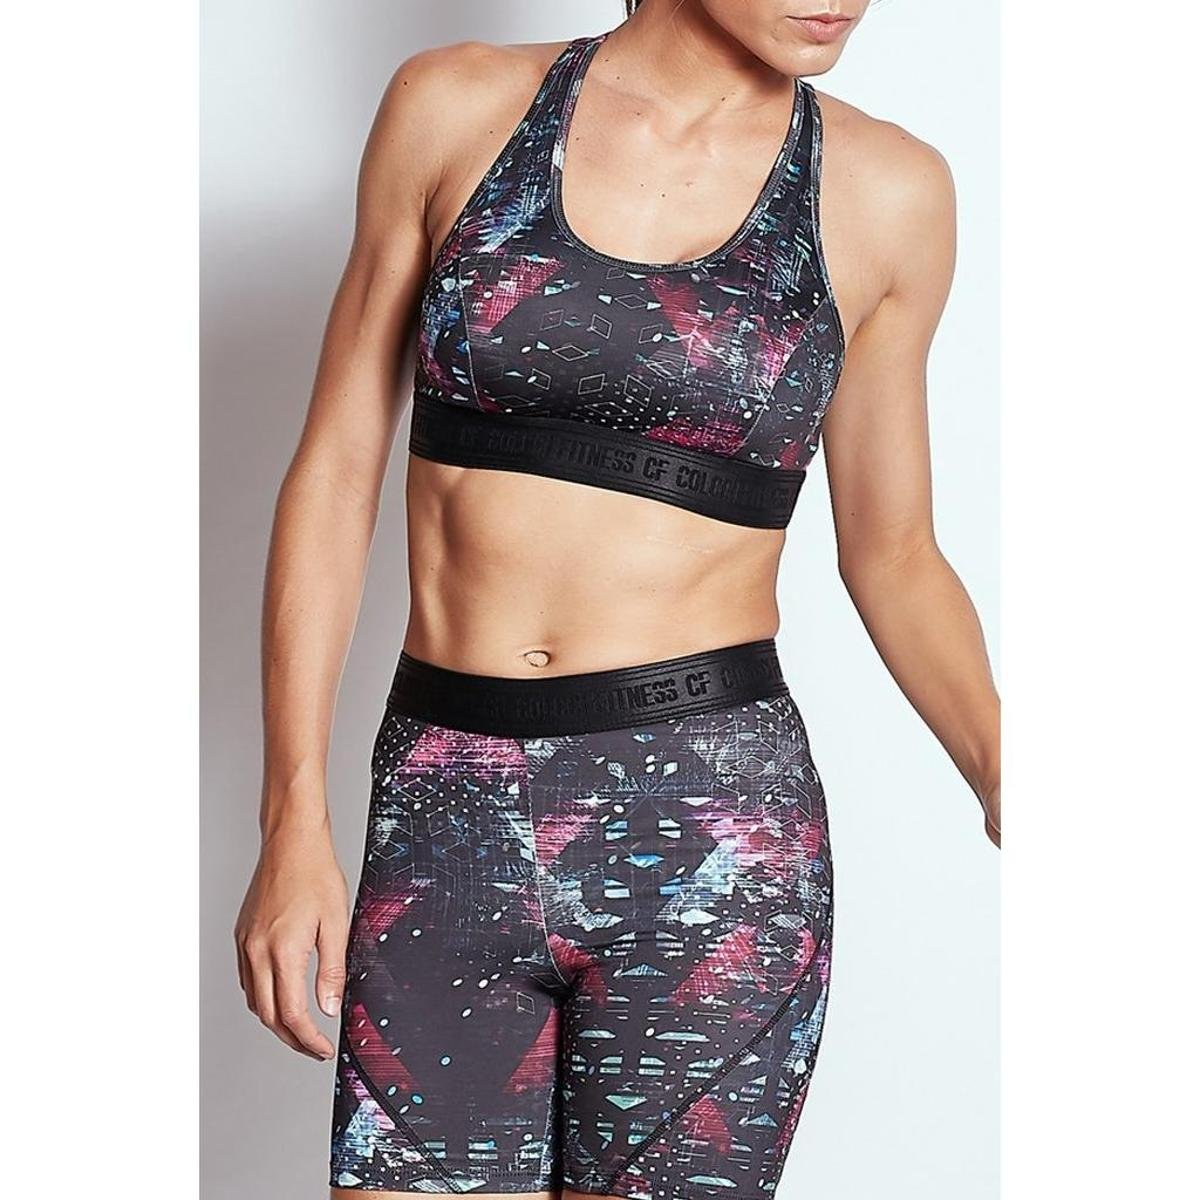 Preto Estampado Fitness Colcci Top Colcci 00465700248 Top wO7WRq4